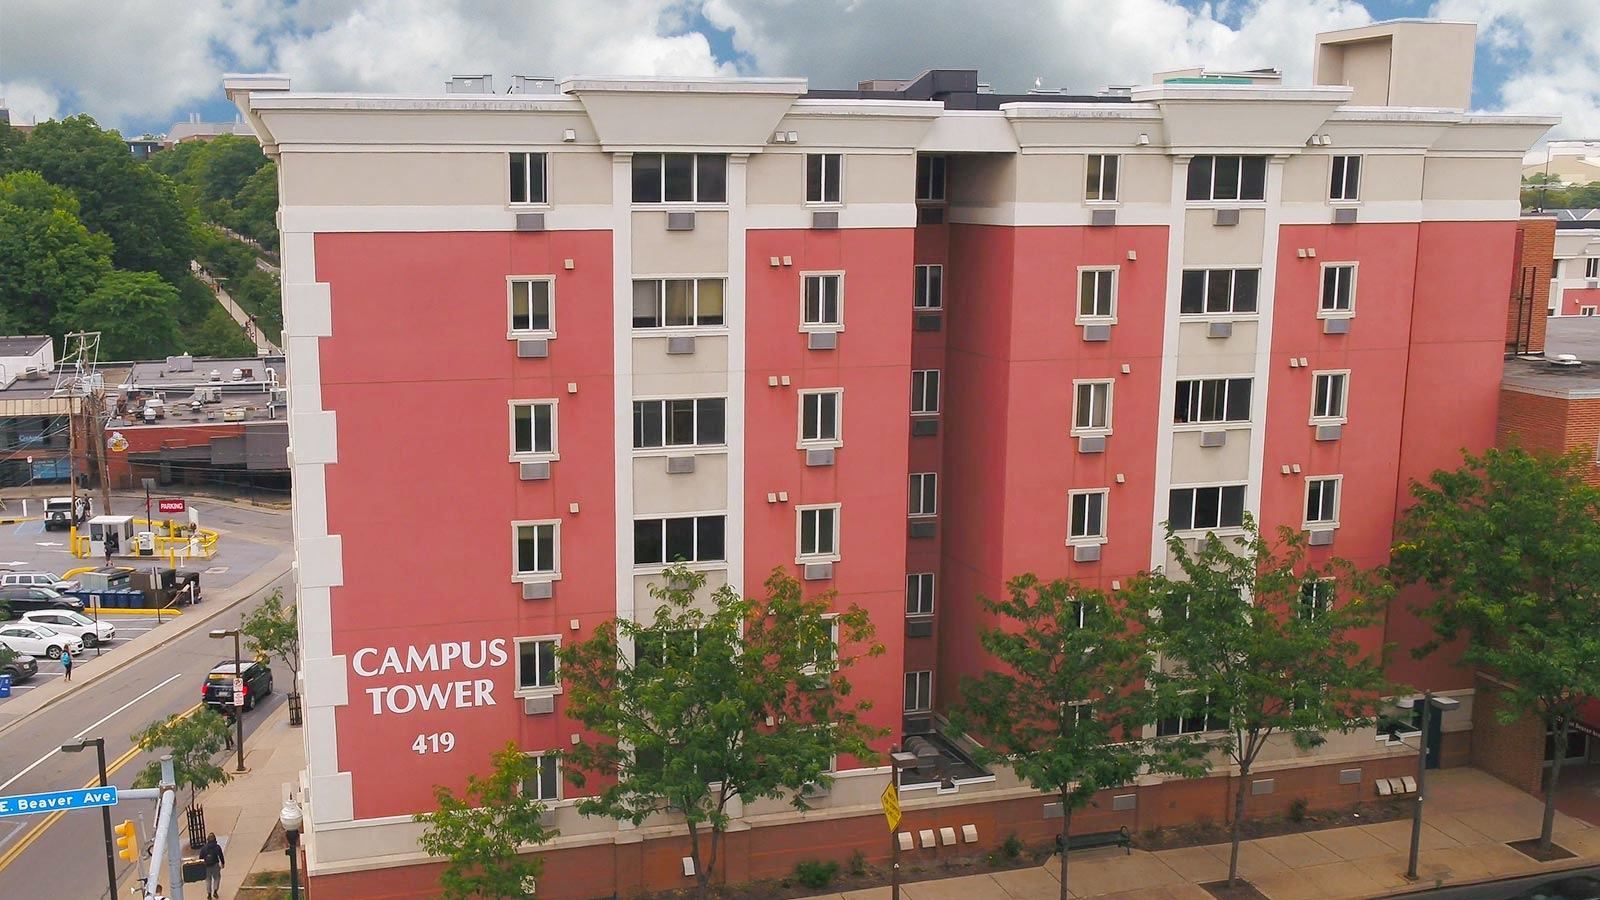 Campus Tower - Penn State Apartments on Beaver Avenue